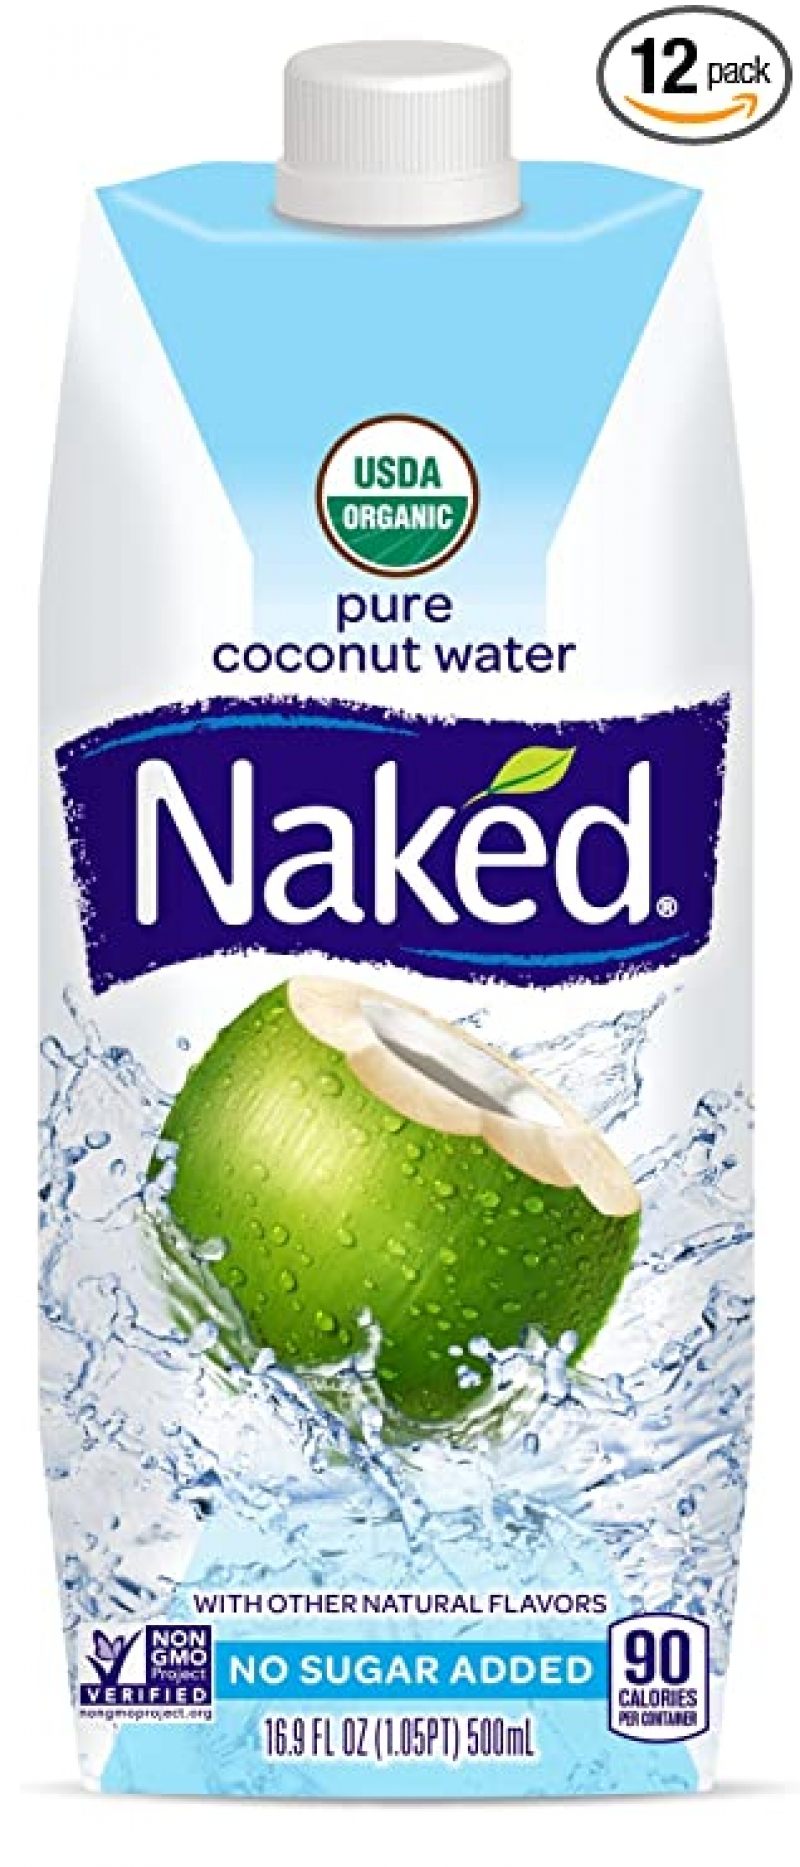 ihocon: Naked Juice 100% Organic Pure Coconut Water, USDA Organic Certified, NON GMO Project Verified, 16.9 Ounce, 12 Pack 有機純椰子水